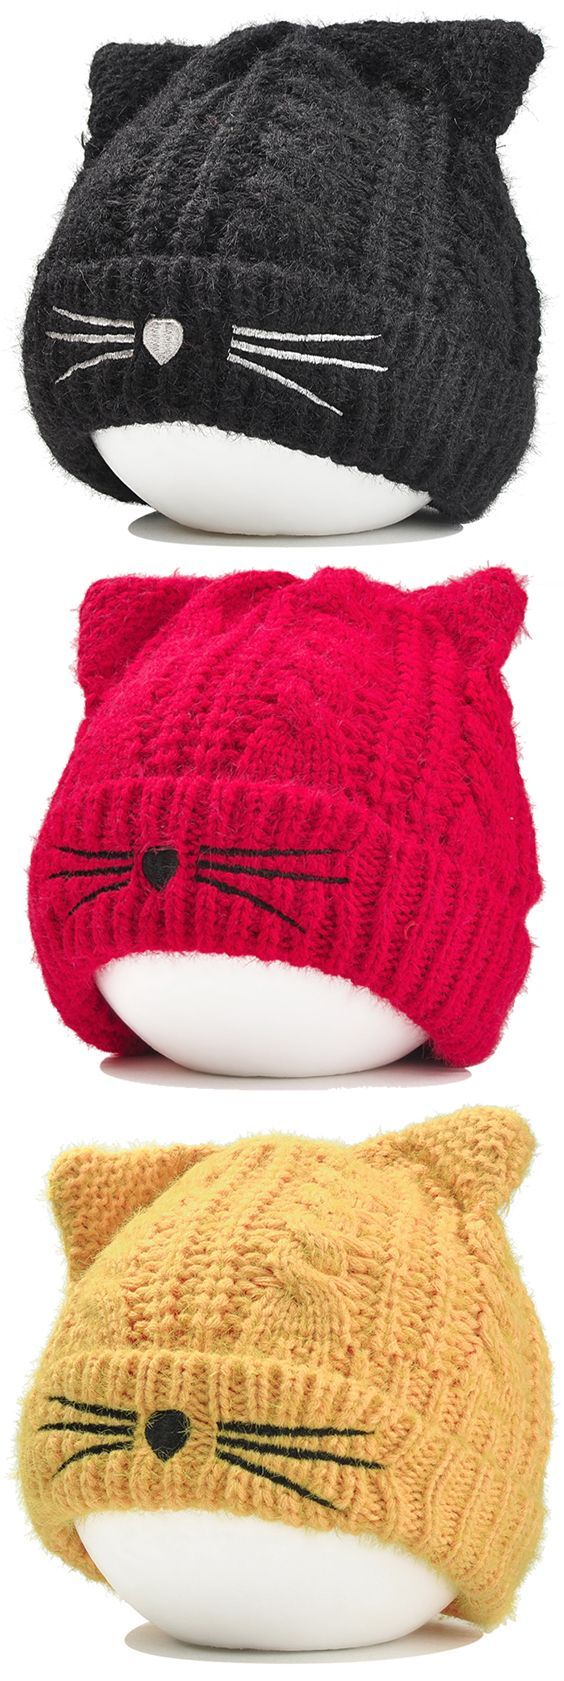 Funny Kitty Ear Decoration Knitted Lightweight Beanie.FREE SHIPPING ...